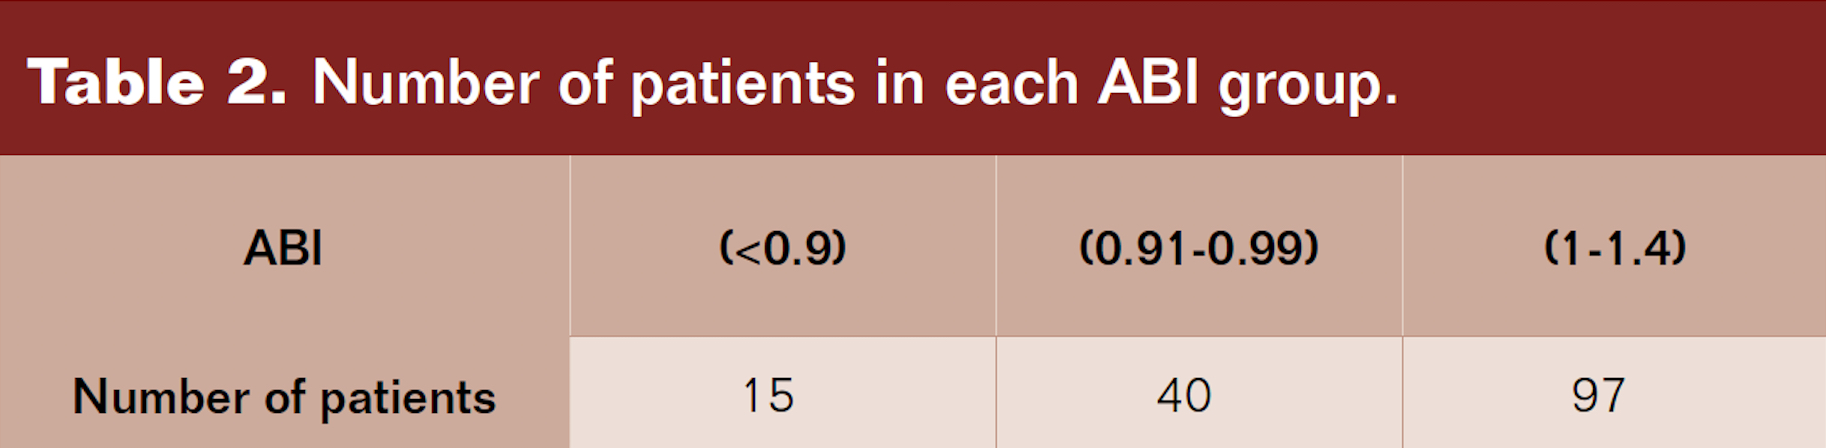 Number of patients in each ABI group